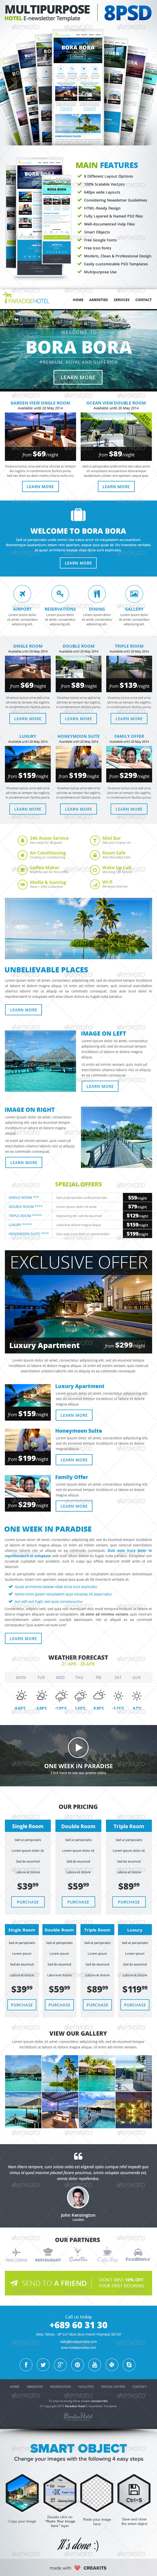 GraphicRiver Multipurpose Hotel E-newsletter E-mail Template 7501556